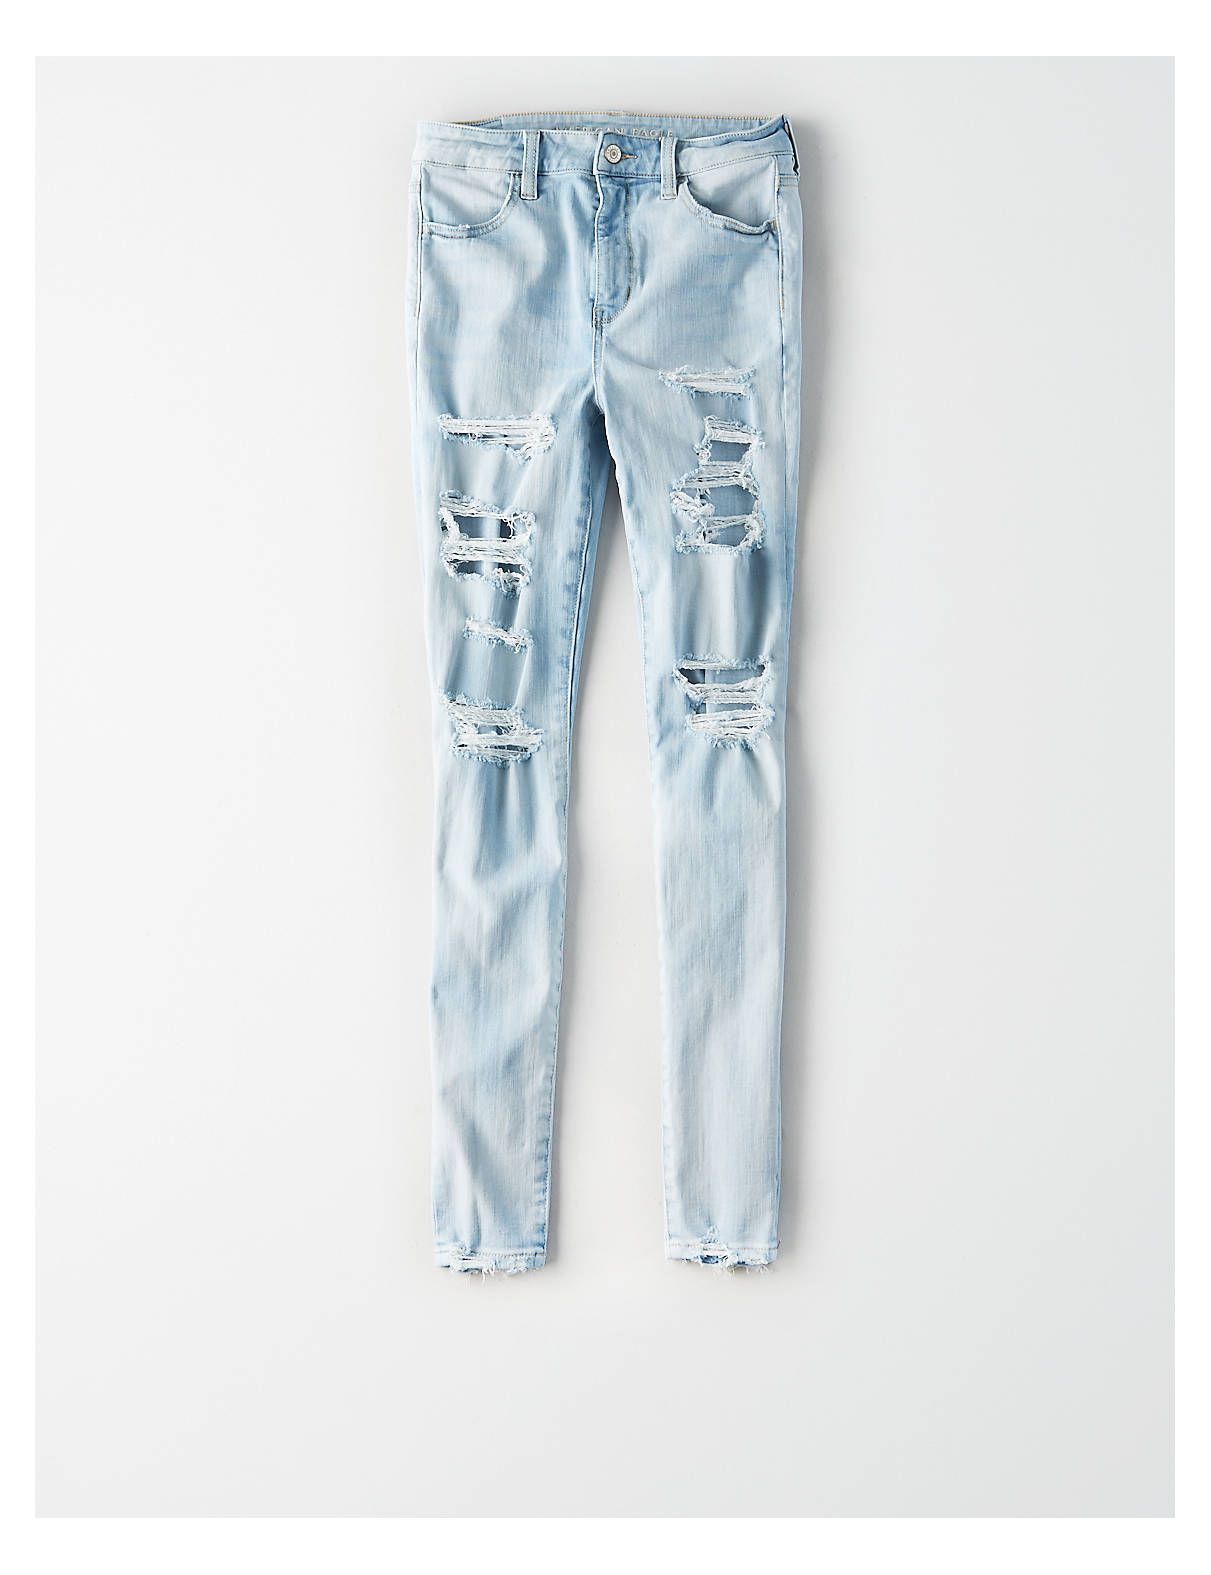 23d37e1f7276a AE 360 Ne(X)t Level Super High-Waisted Jegging Crop, Indigo Skylight  Destroy | American Eagle Outfitters